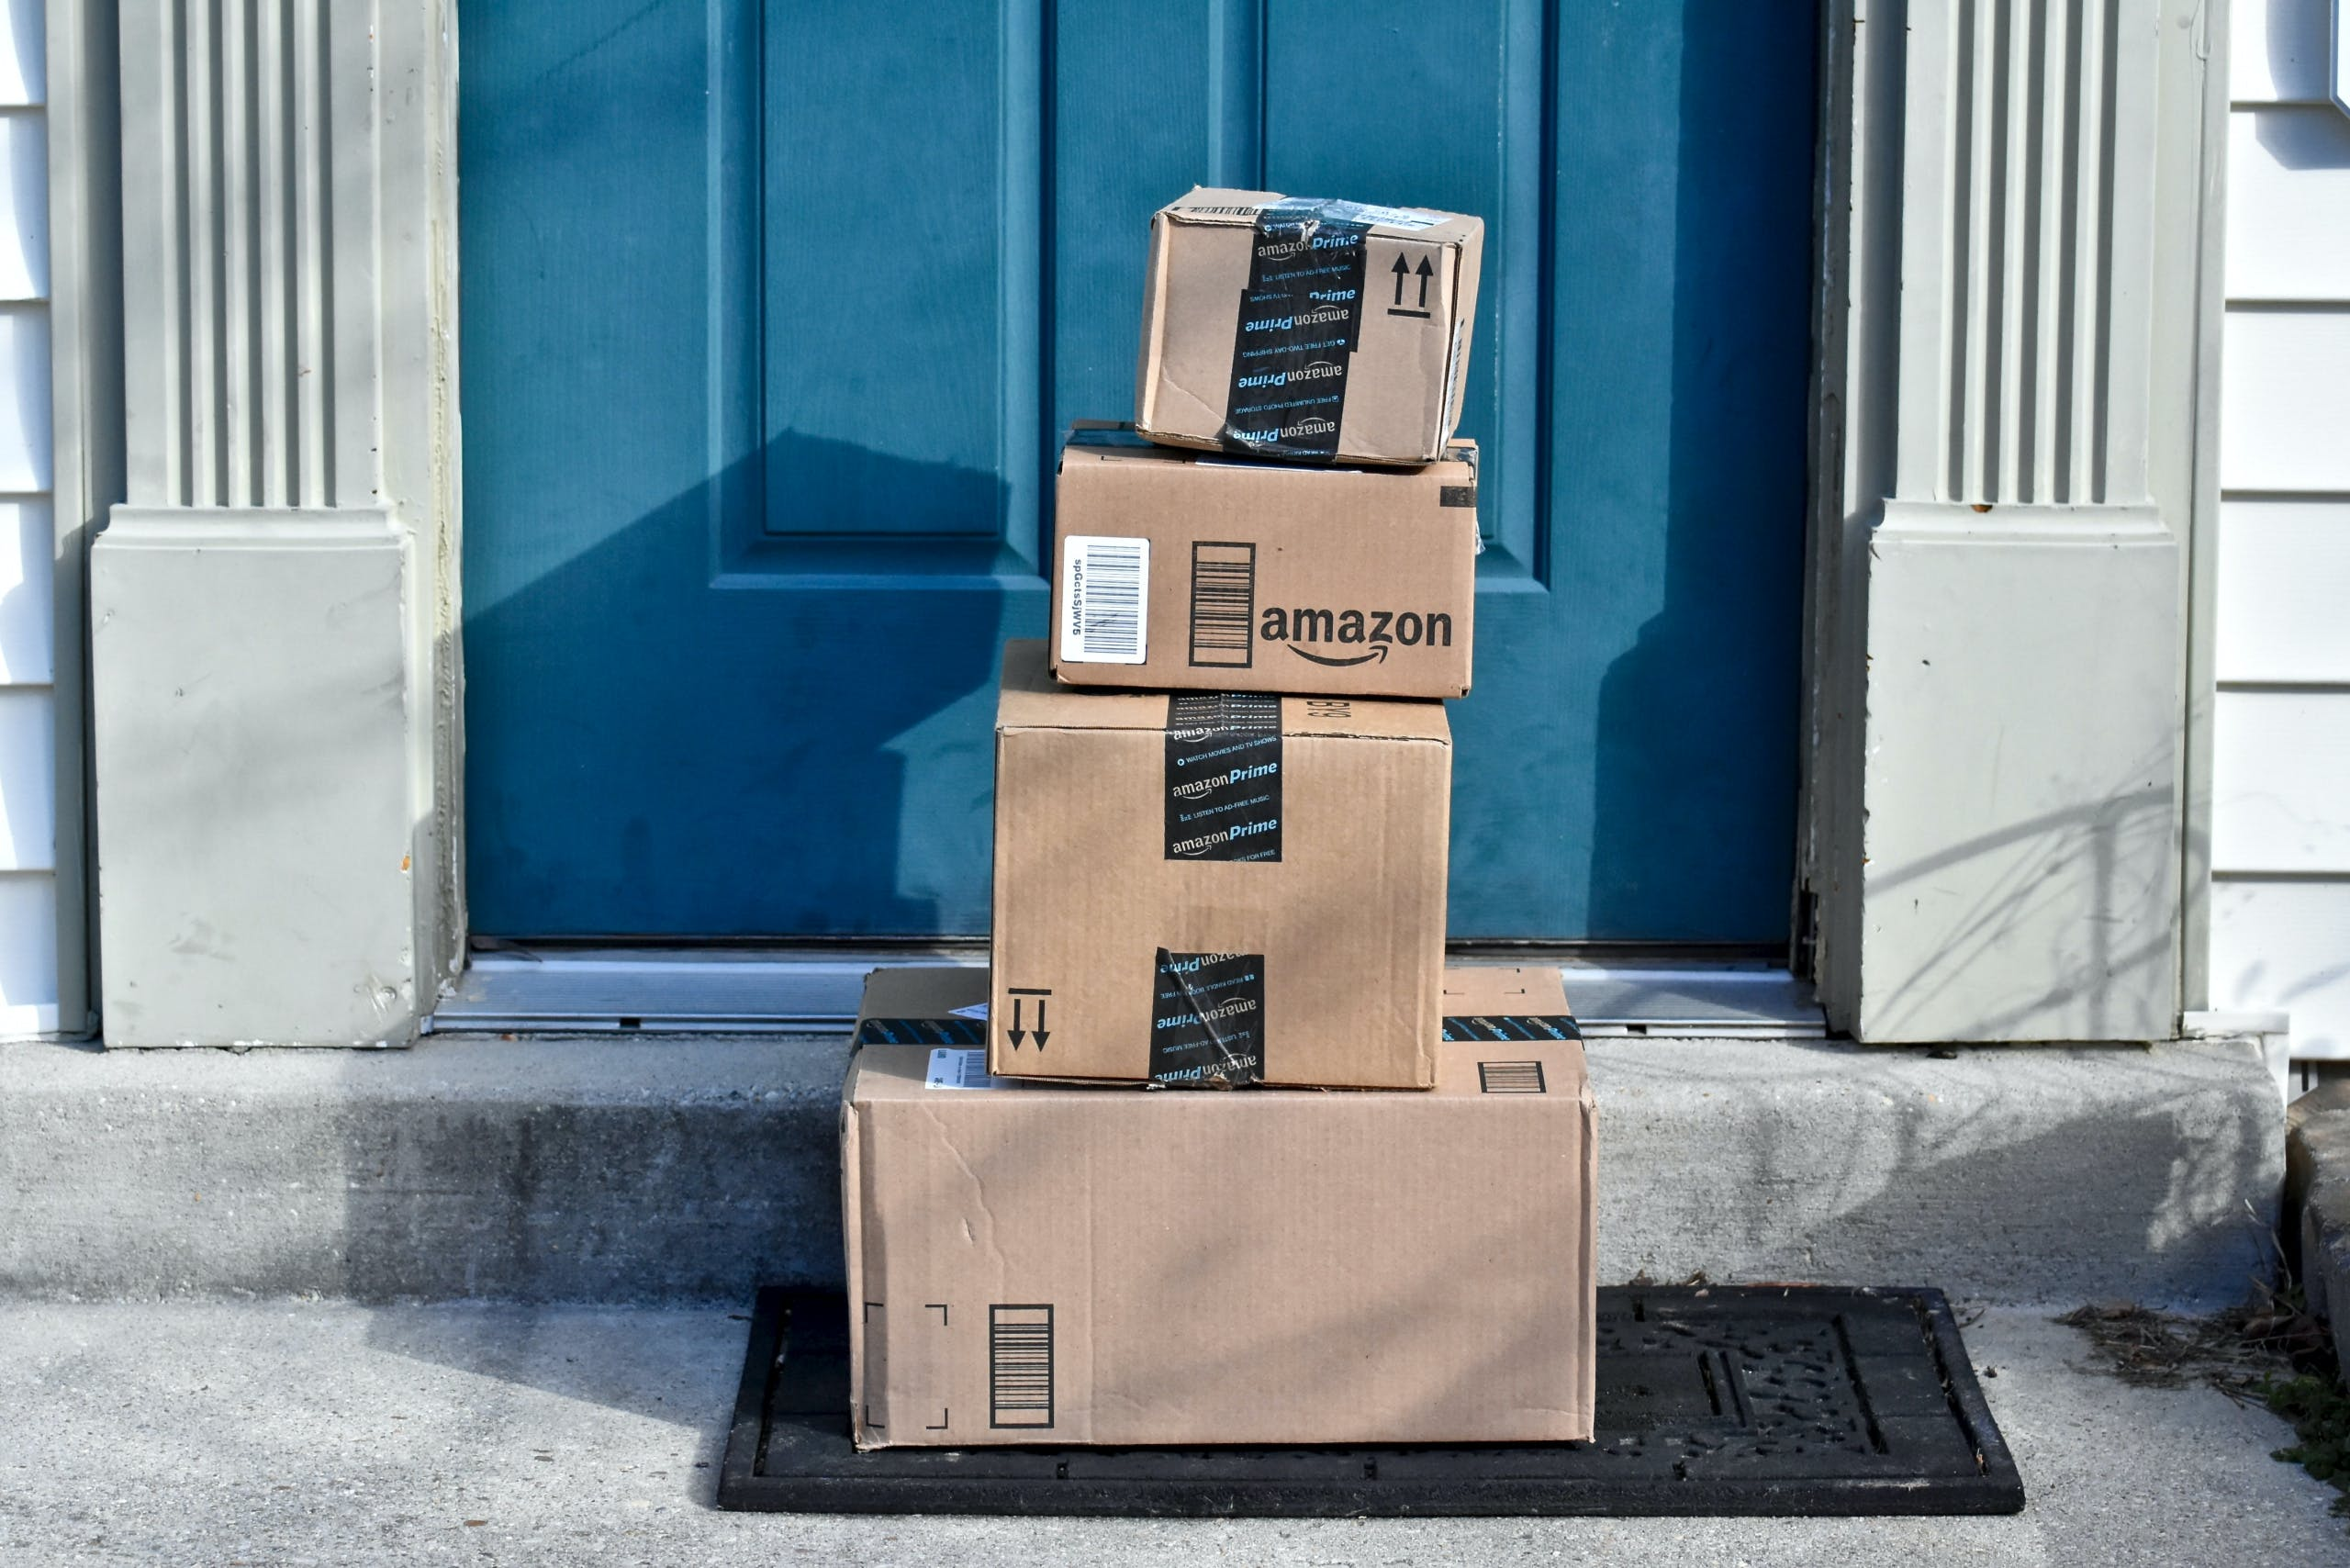 Does Amazon need to worry about good design? | Tech News